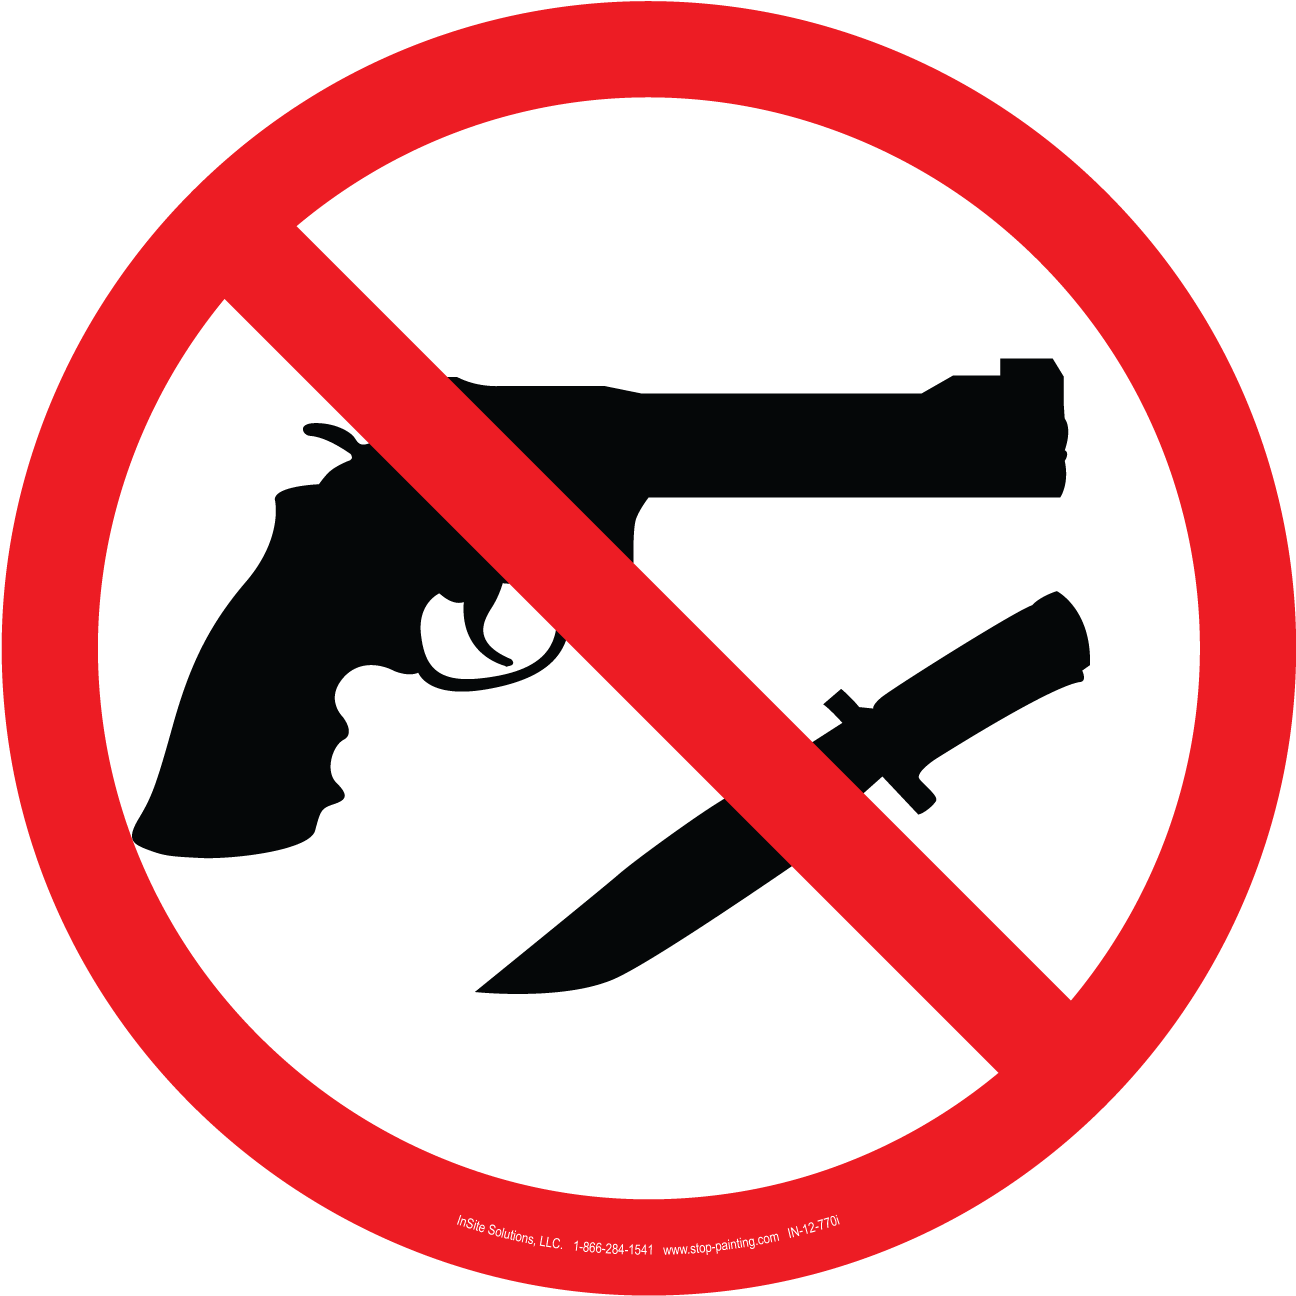 Weapons Not Allowed Floor Sig - Weapons Clipart